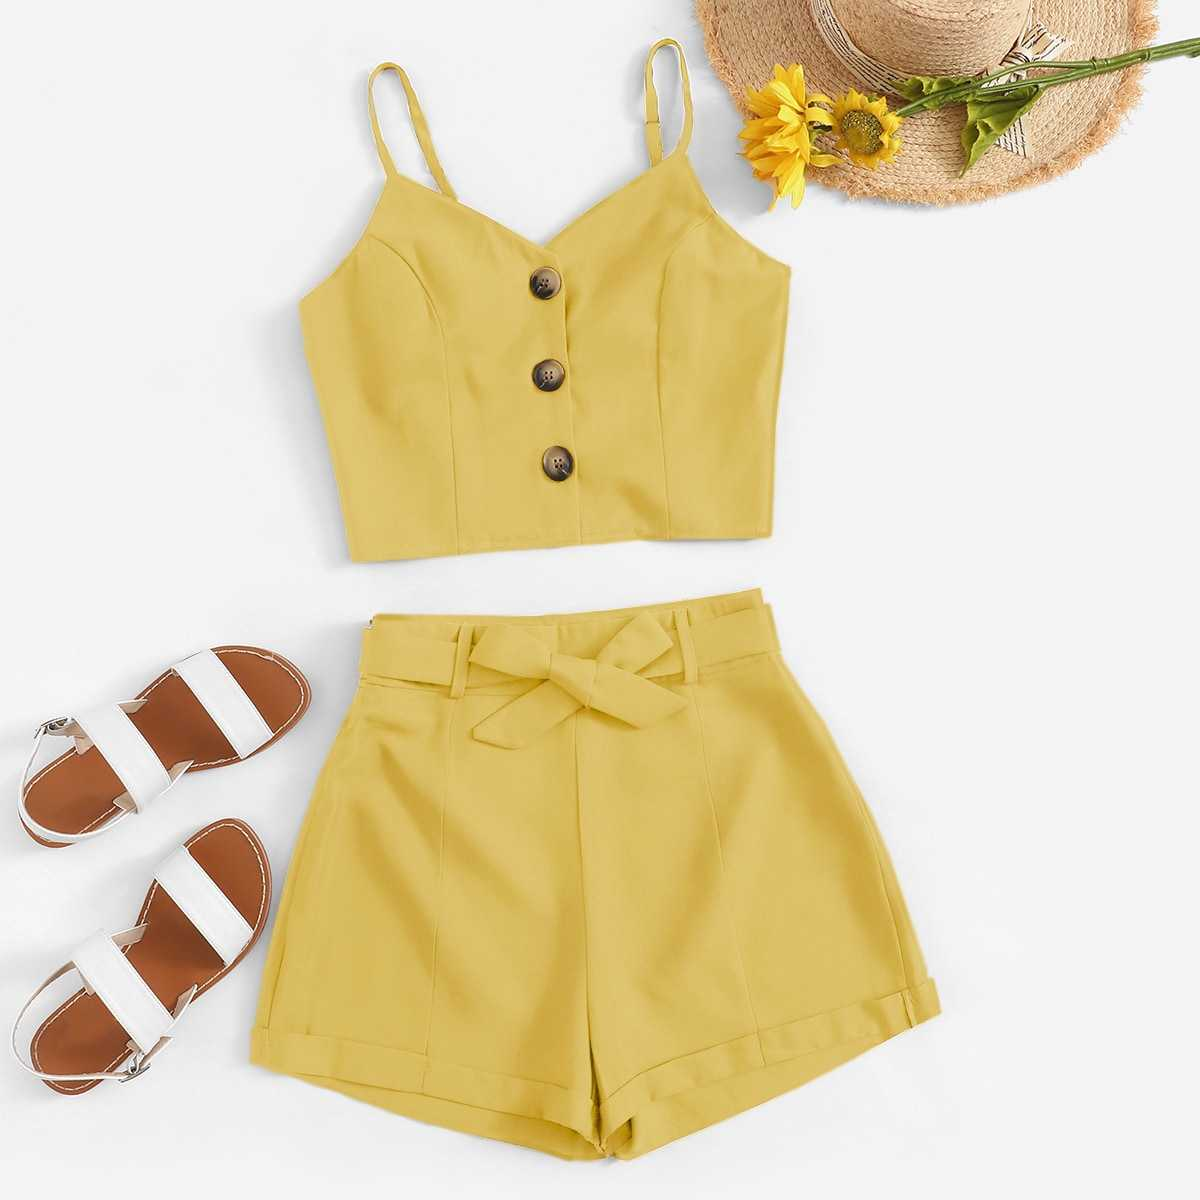 Button Front Crop Cami Top With Shorts in Yellow by ROMWE on GOOFASH